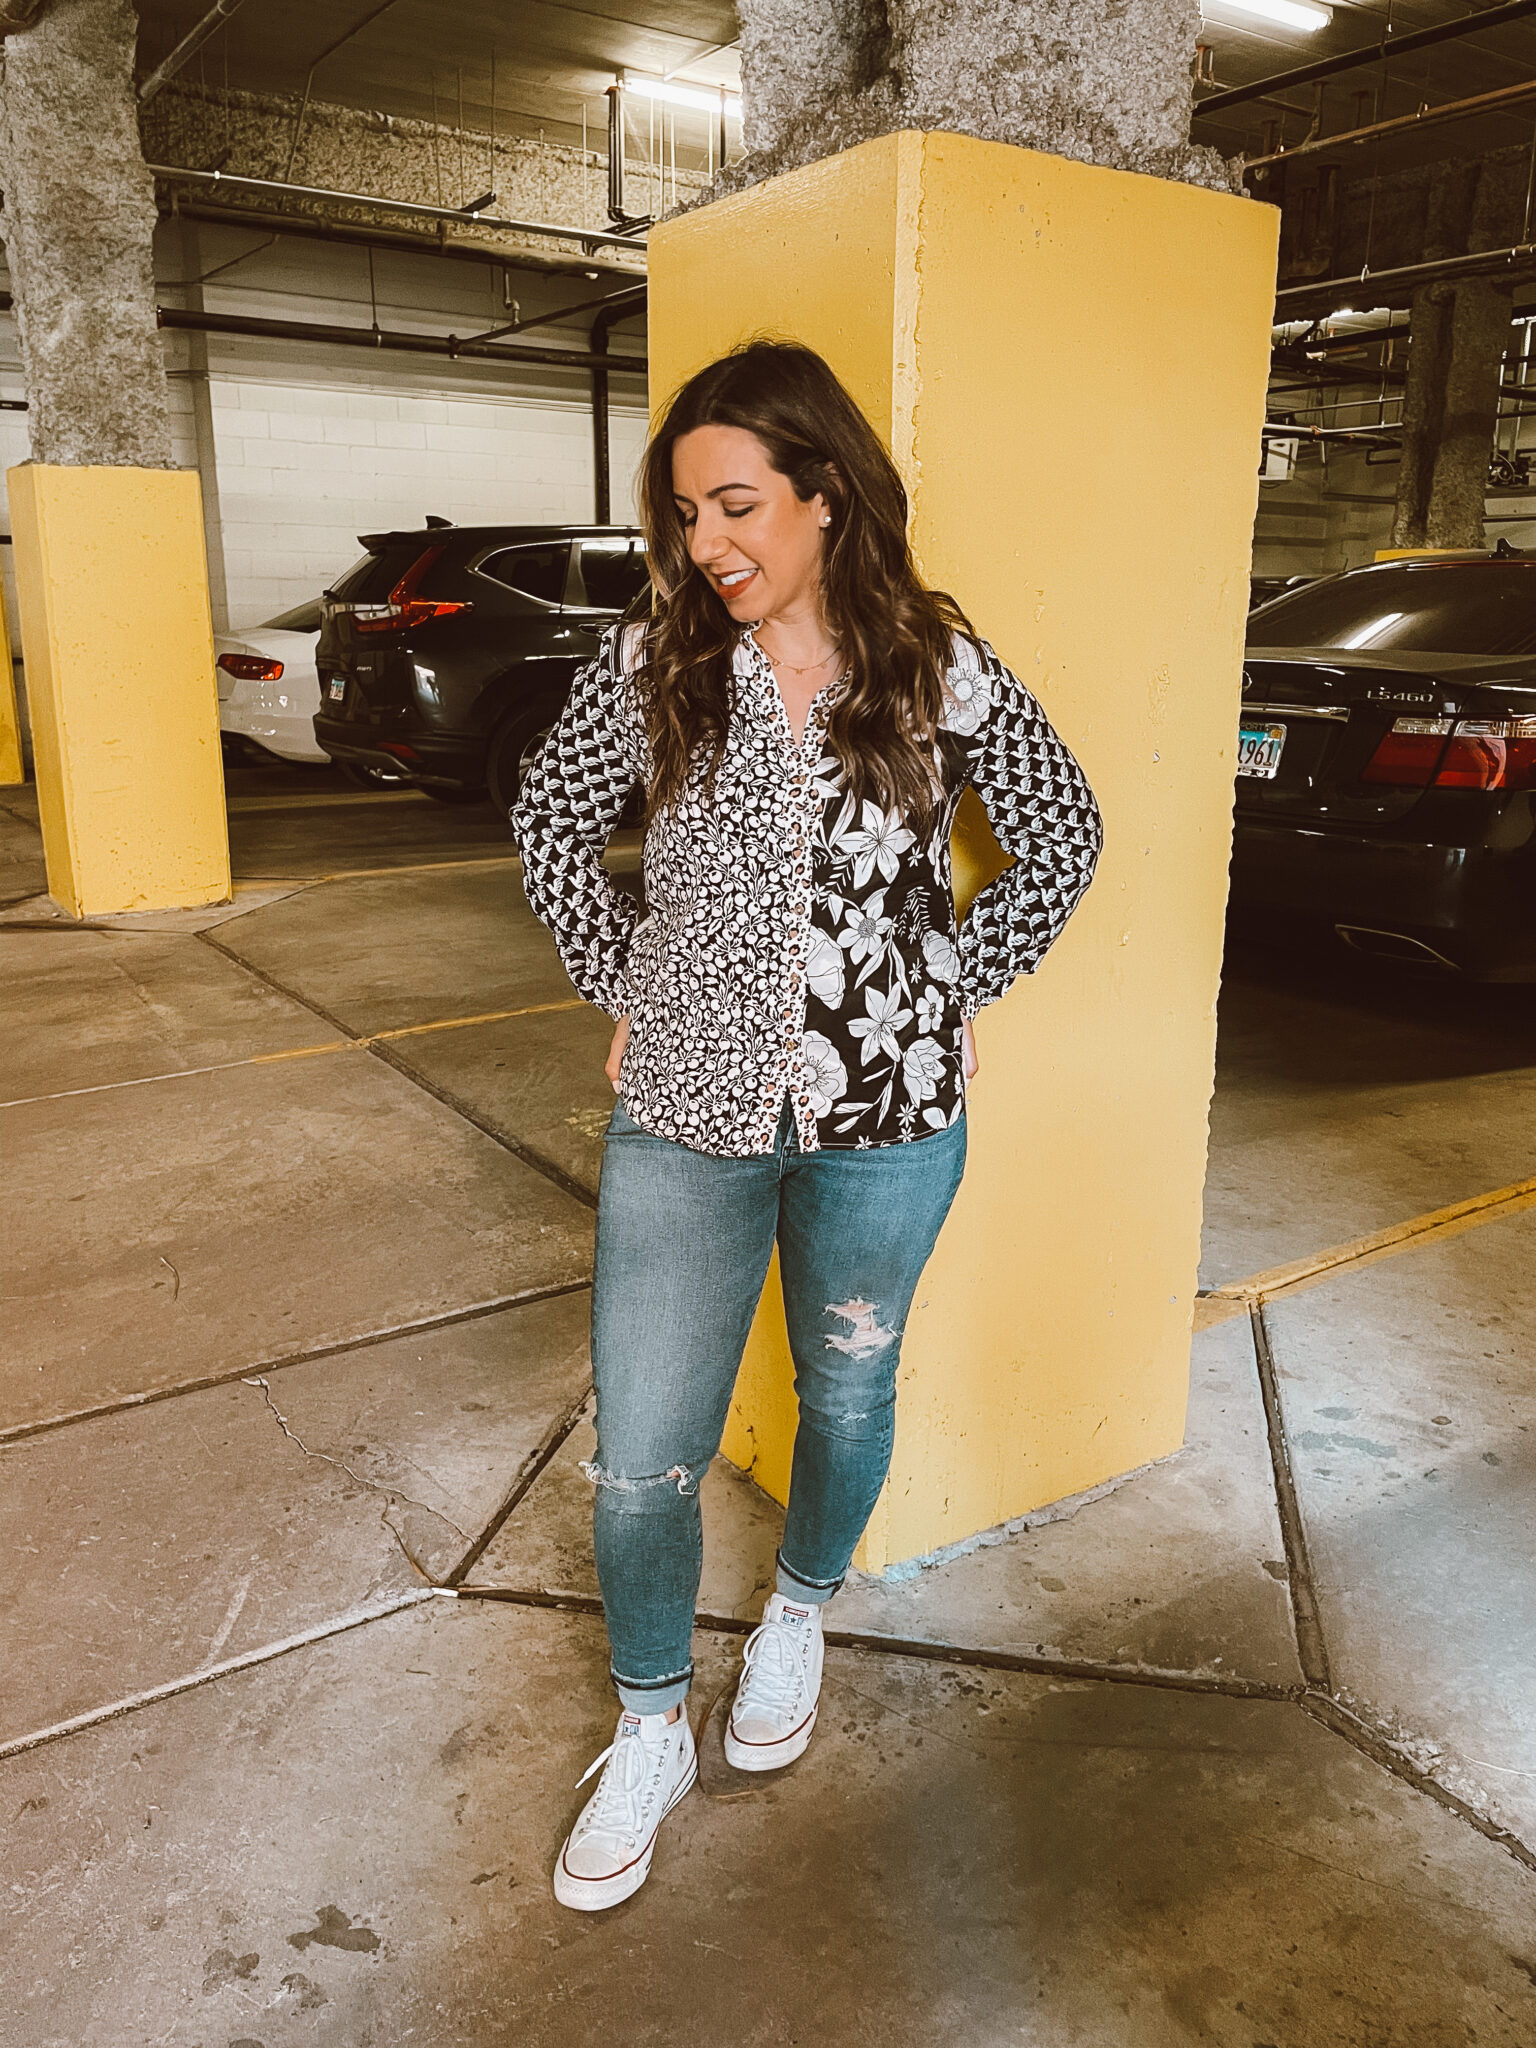 Tucked Shirt by popular Chicago fashion blog, Glass of Glam: image of a woman standing in a parking garage and wearing a black and white mixed print button up shirt, distressed denim, and white Converse sneakers.